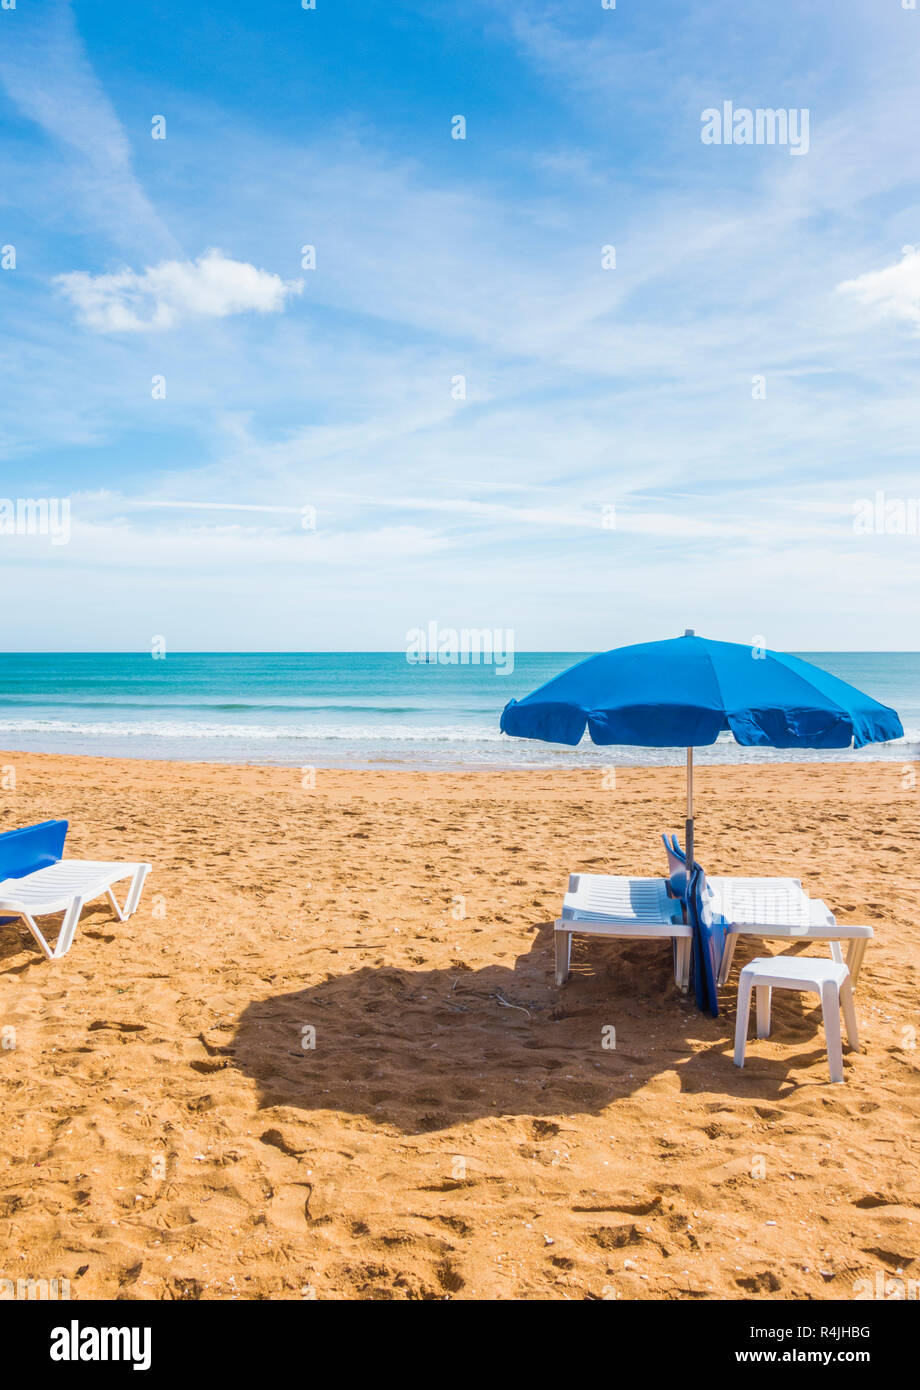 blue umbrellas and sun chairs at deserted beach - Stock Image